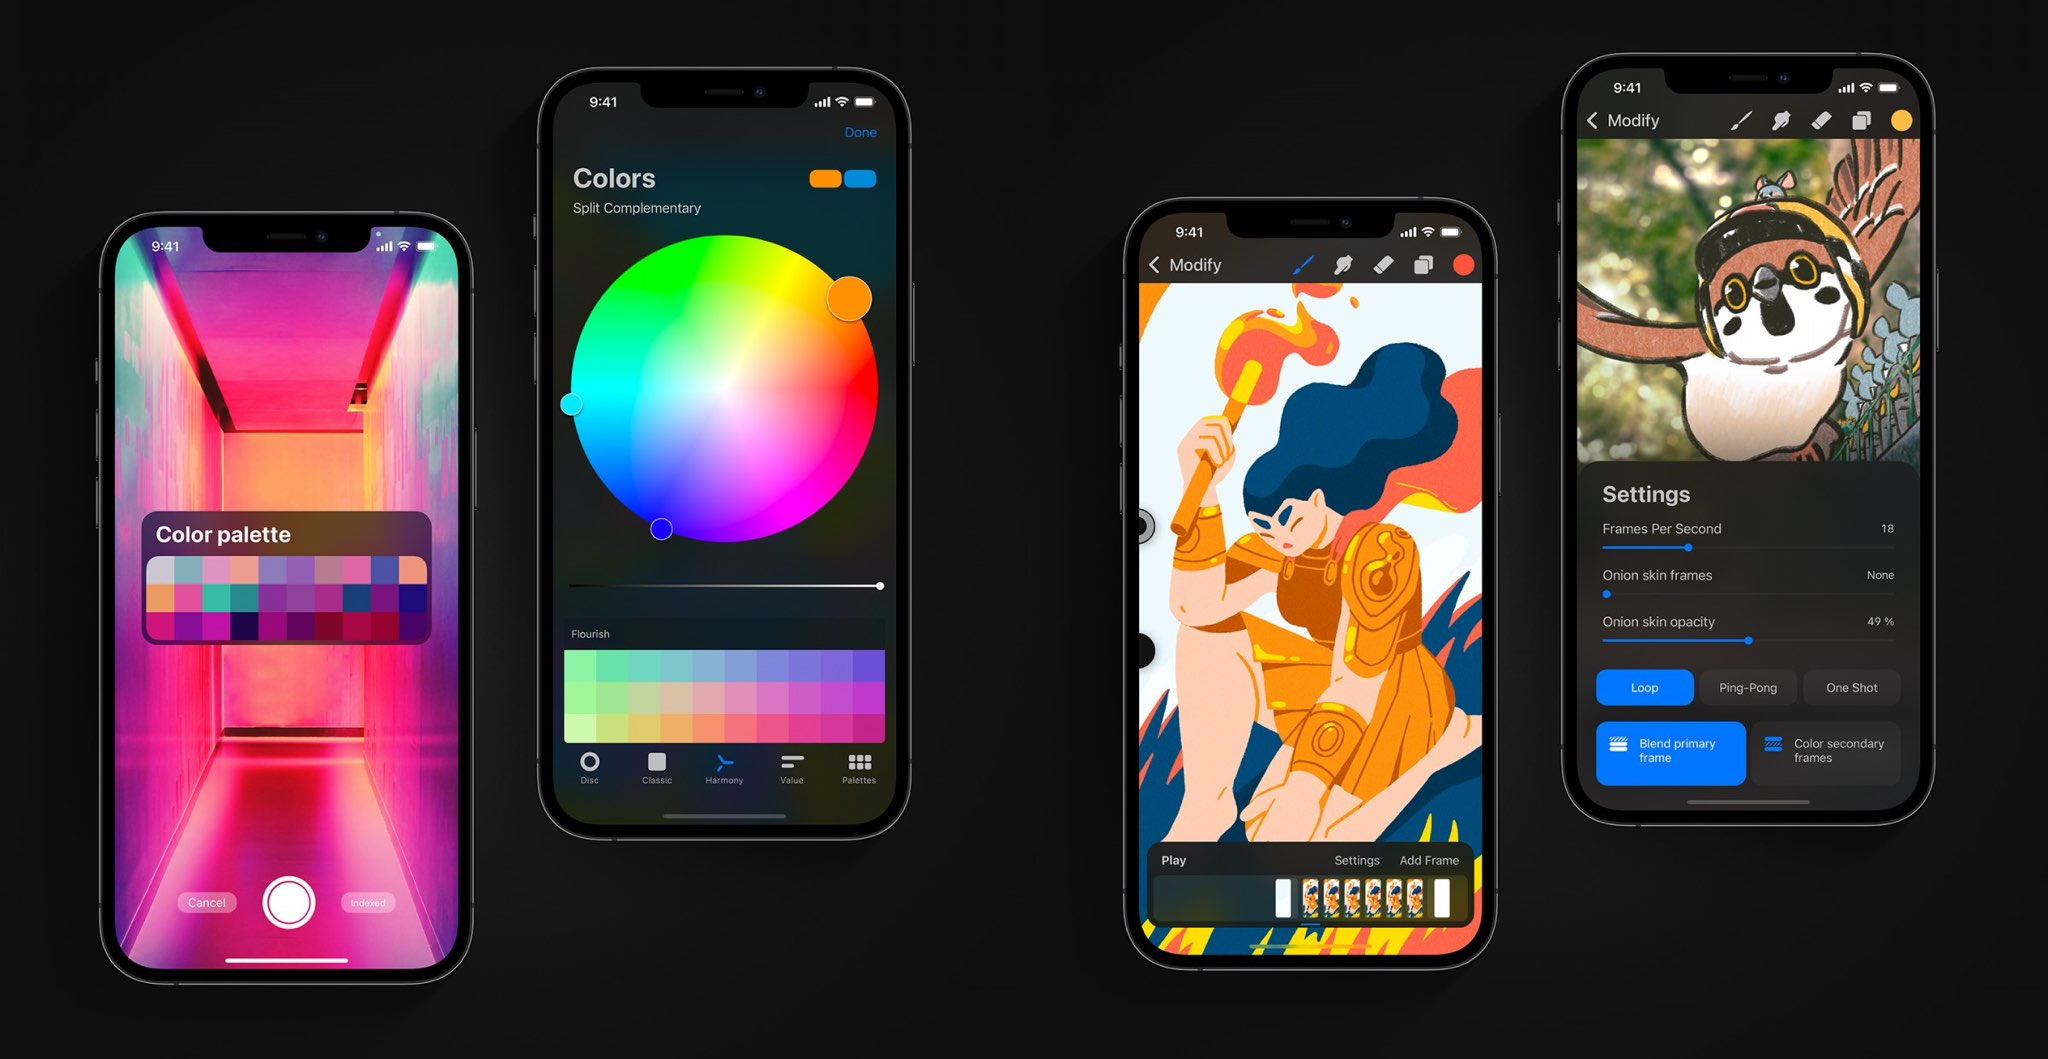 A screenshot collage showing off various new features in Procreate Pocket 4.0 or iPhone